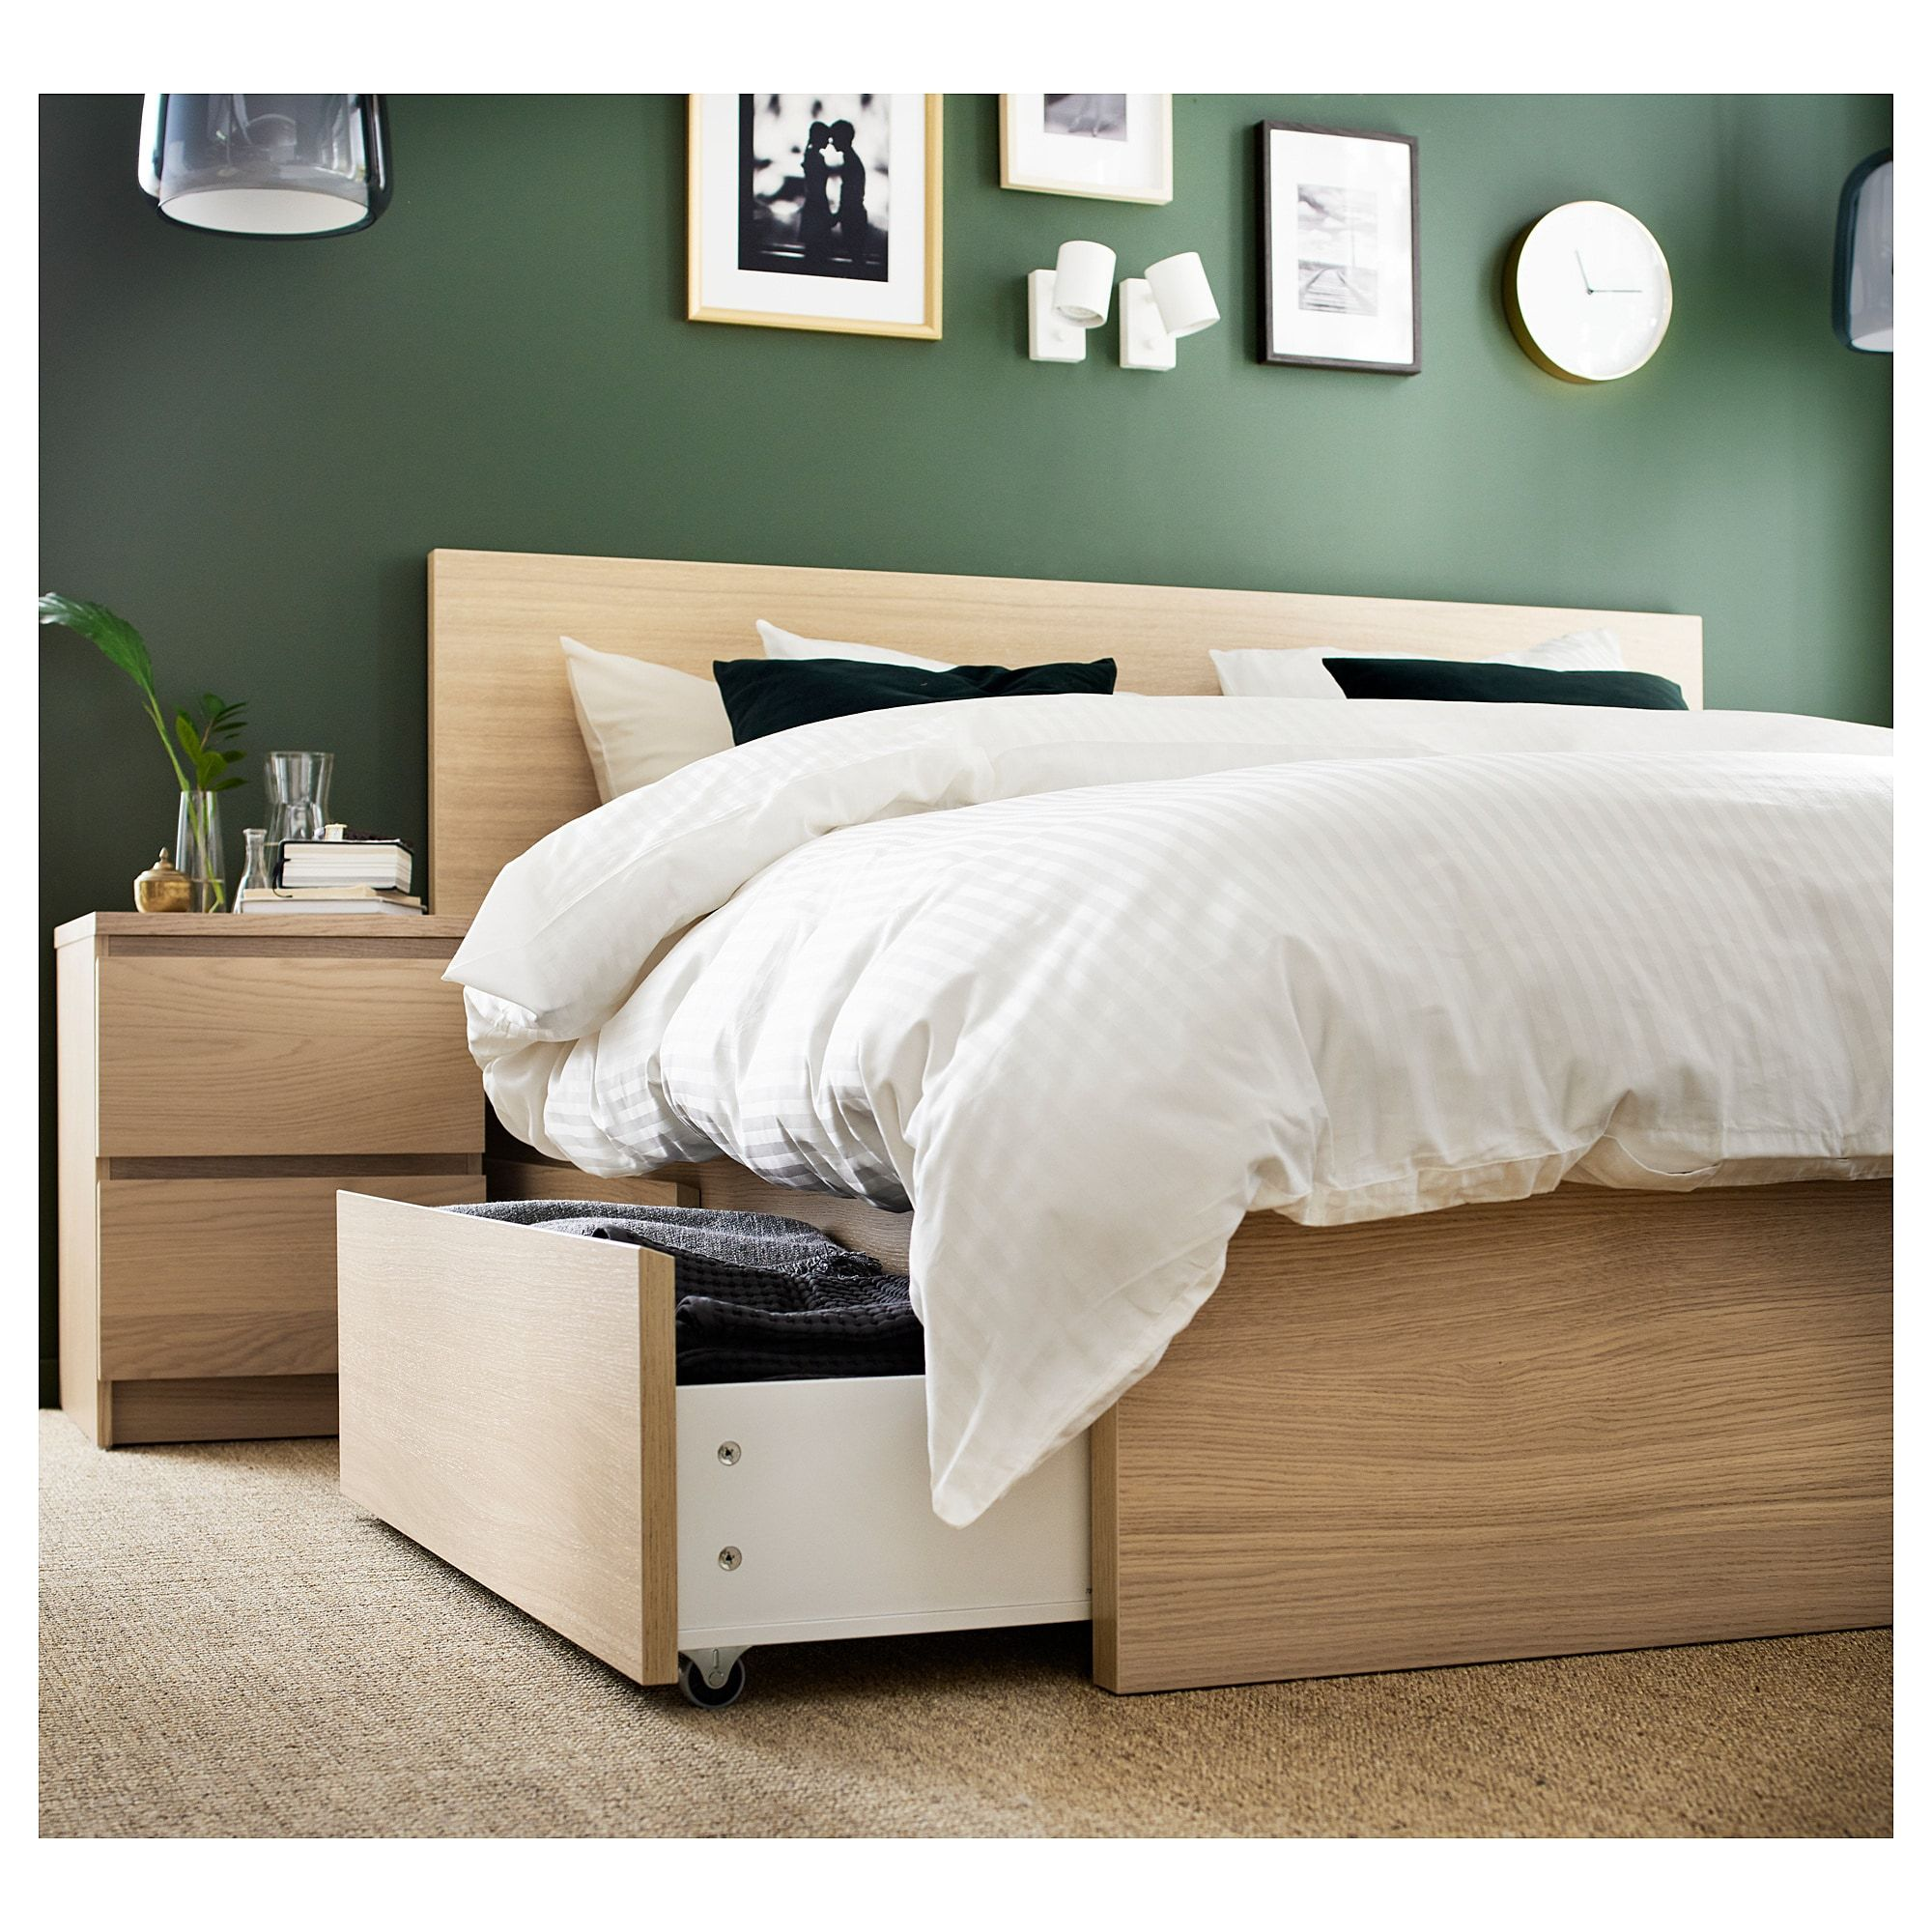 Ikea Malm White Stained Oak Veneer High Bed Frame 2 Storage Boxes